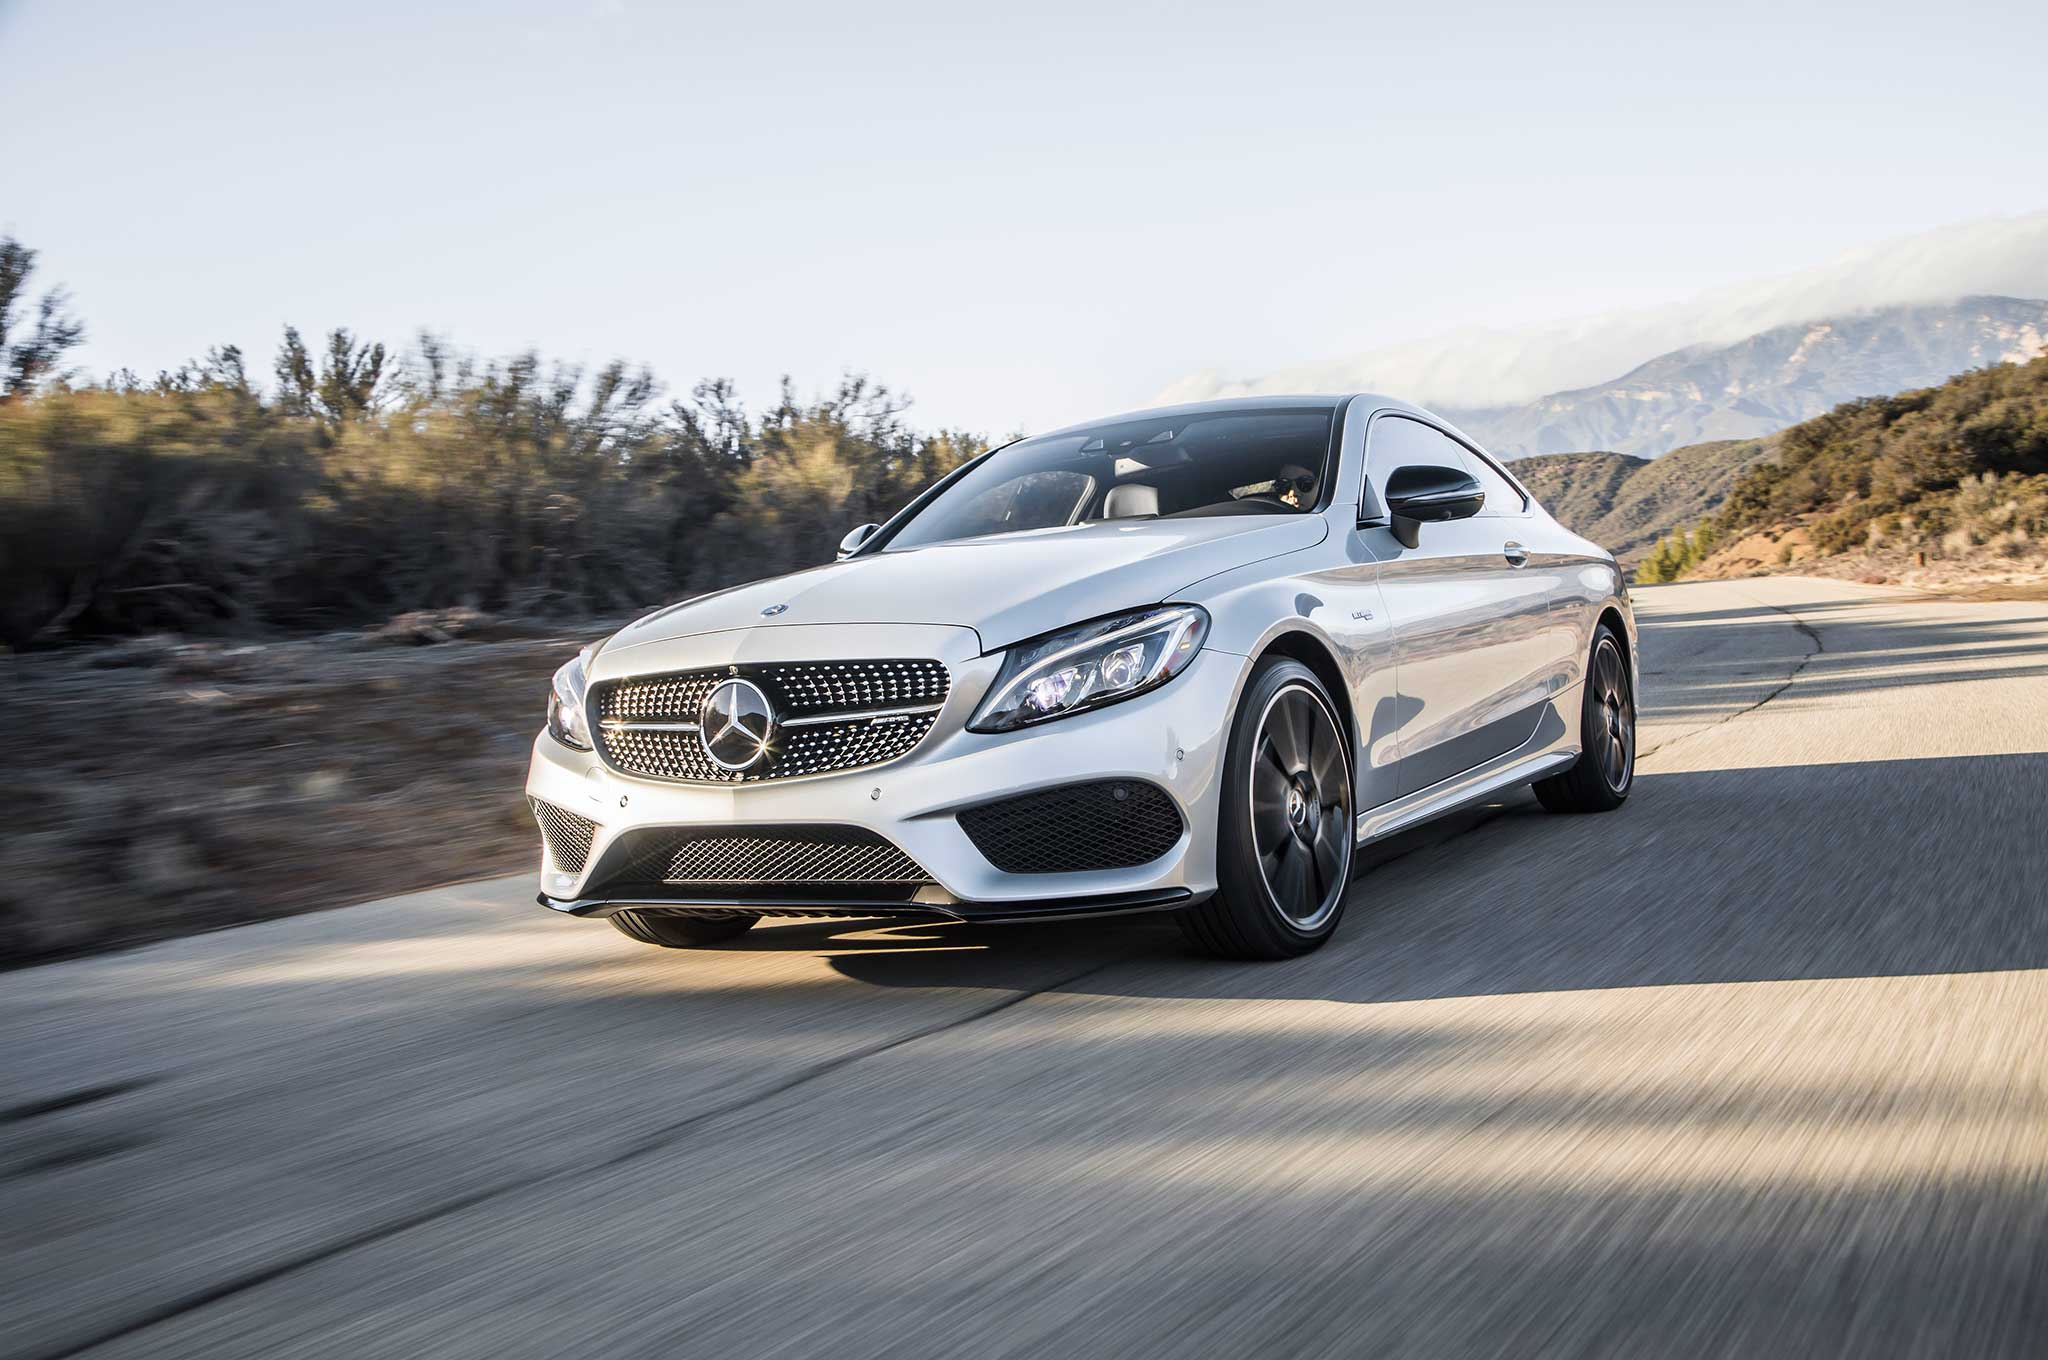 2017 Mercedes AMG C43 - Right in the Middle